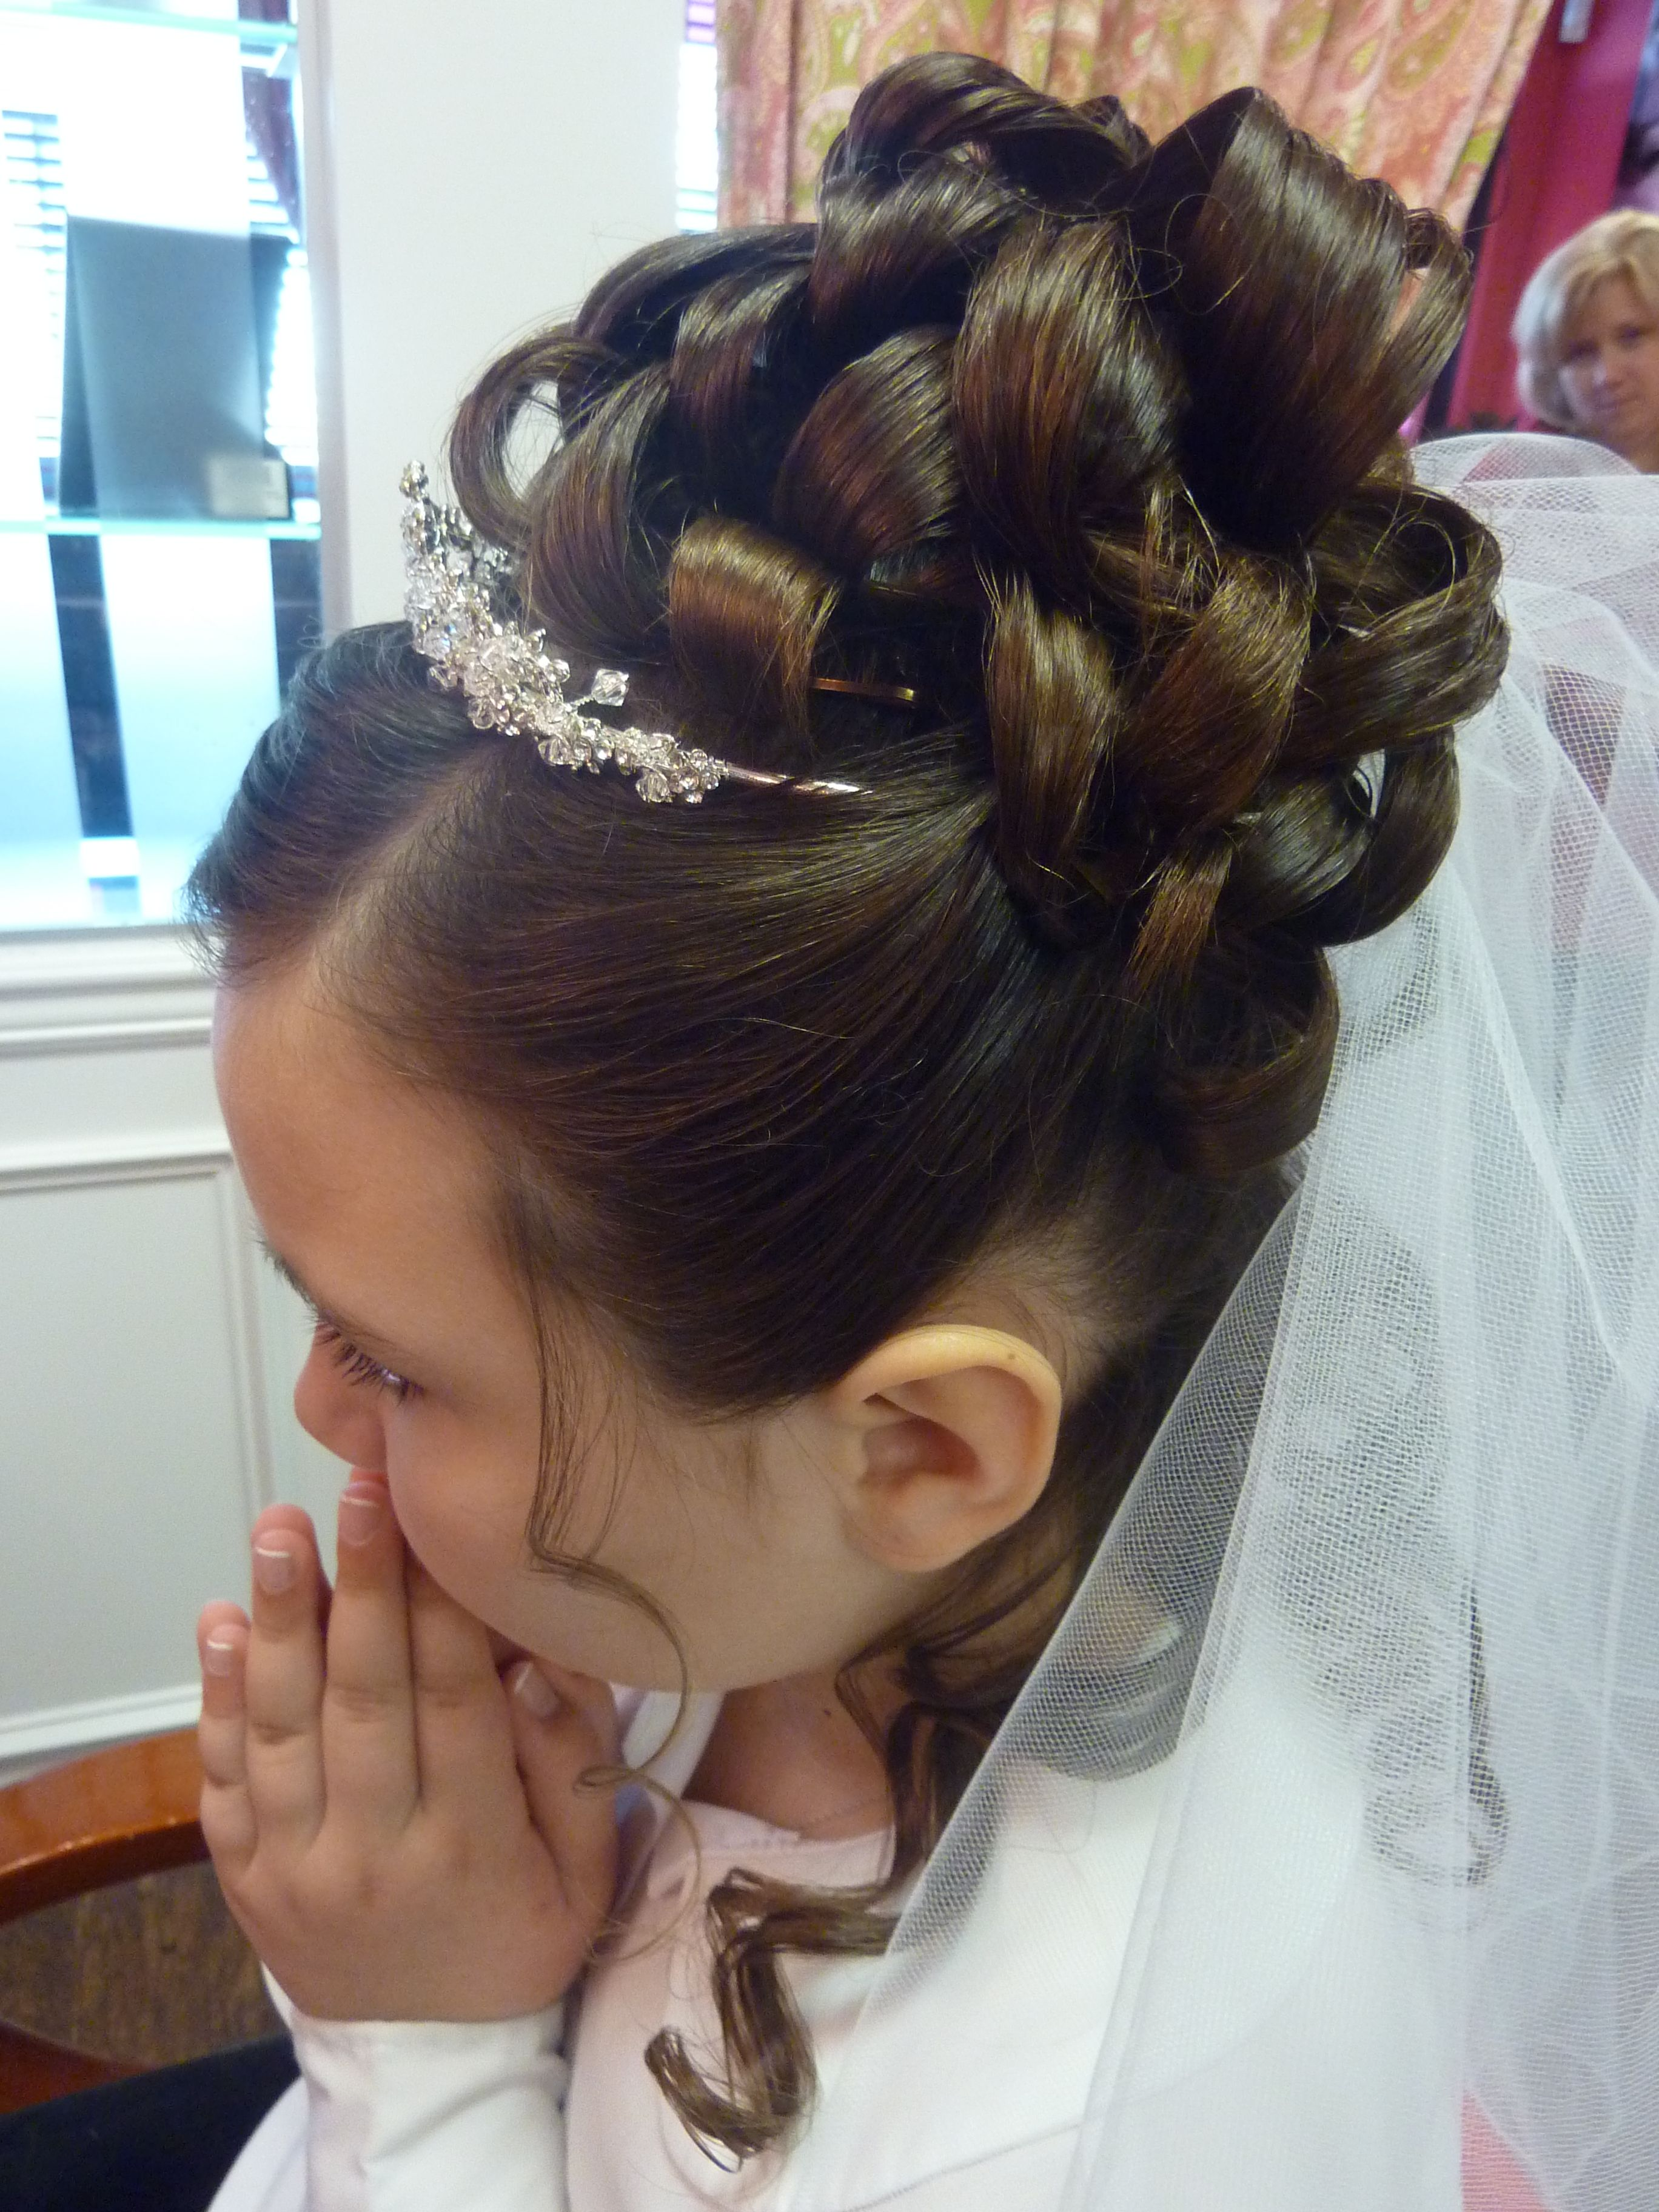 Communion Hair #updo #kidshairstyling # Hair Styling Pinterest